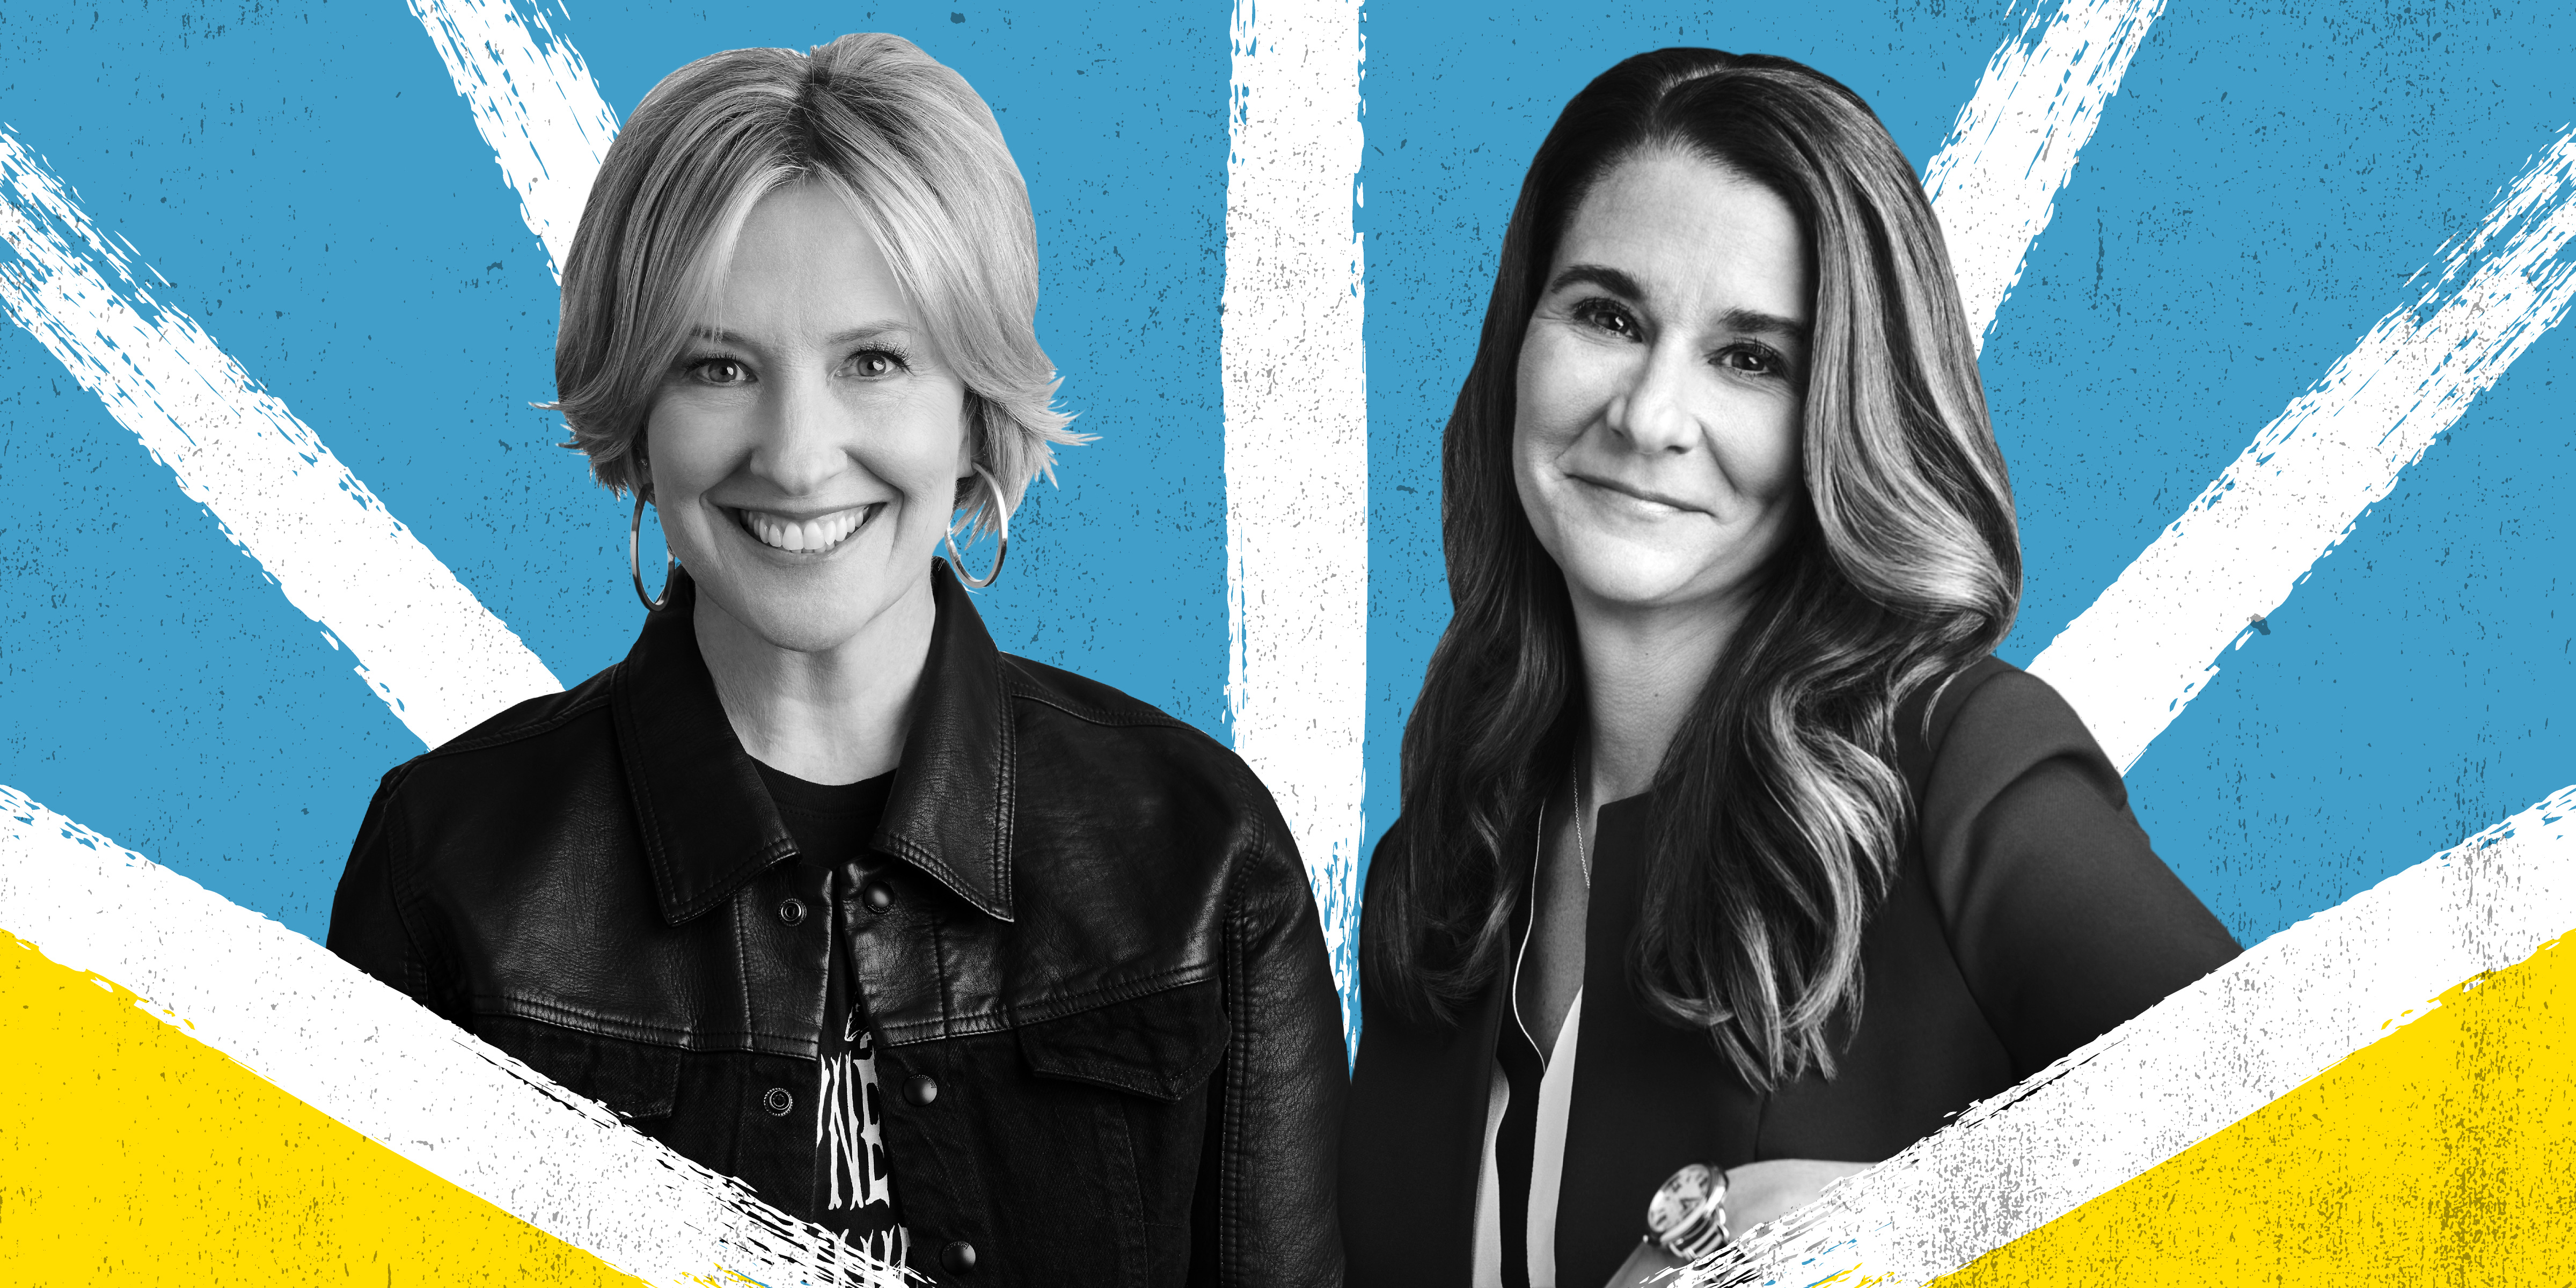 Headshot photos of Melinda Gates and Brene Brown in black and white on an illustrated background